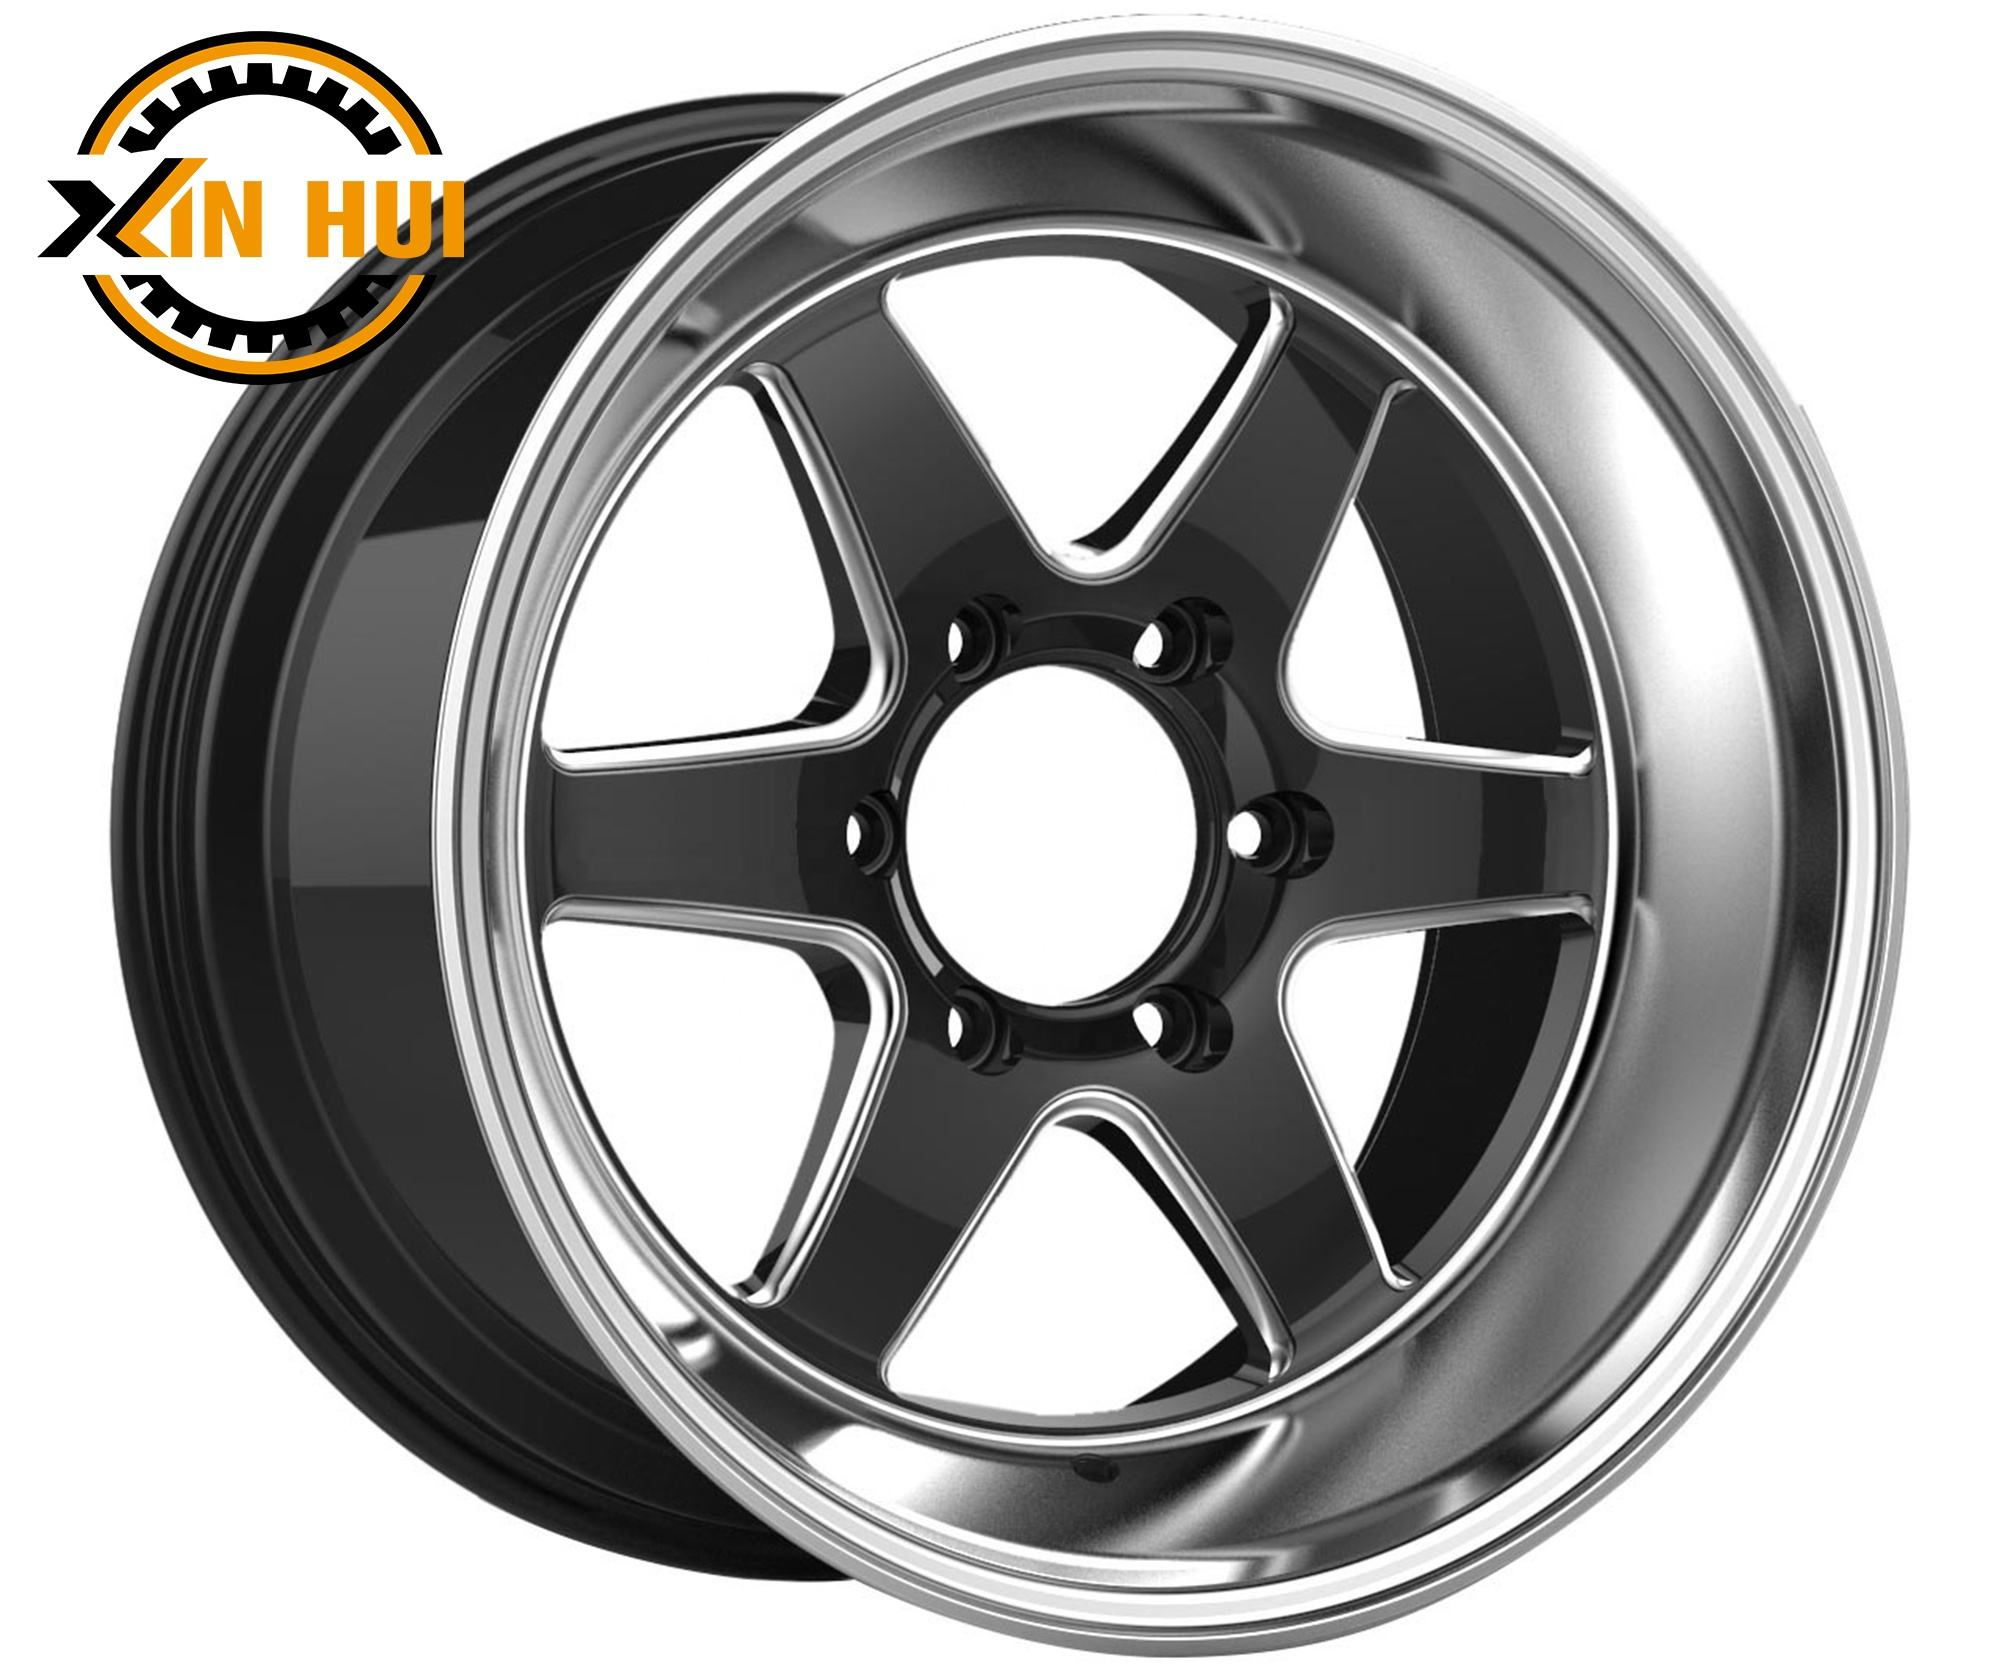 Deep lip 18 inch rays g25 alloy wheel with pcd 6x139.7 in stock with factory price